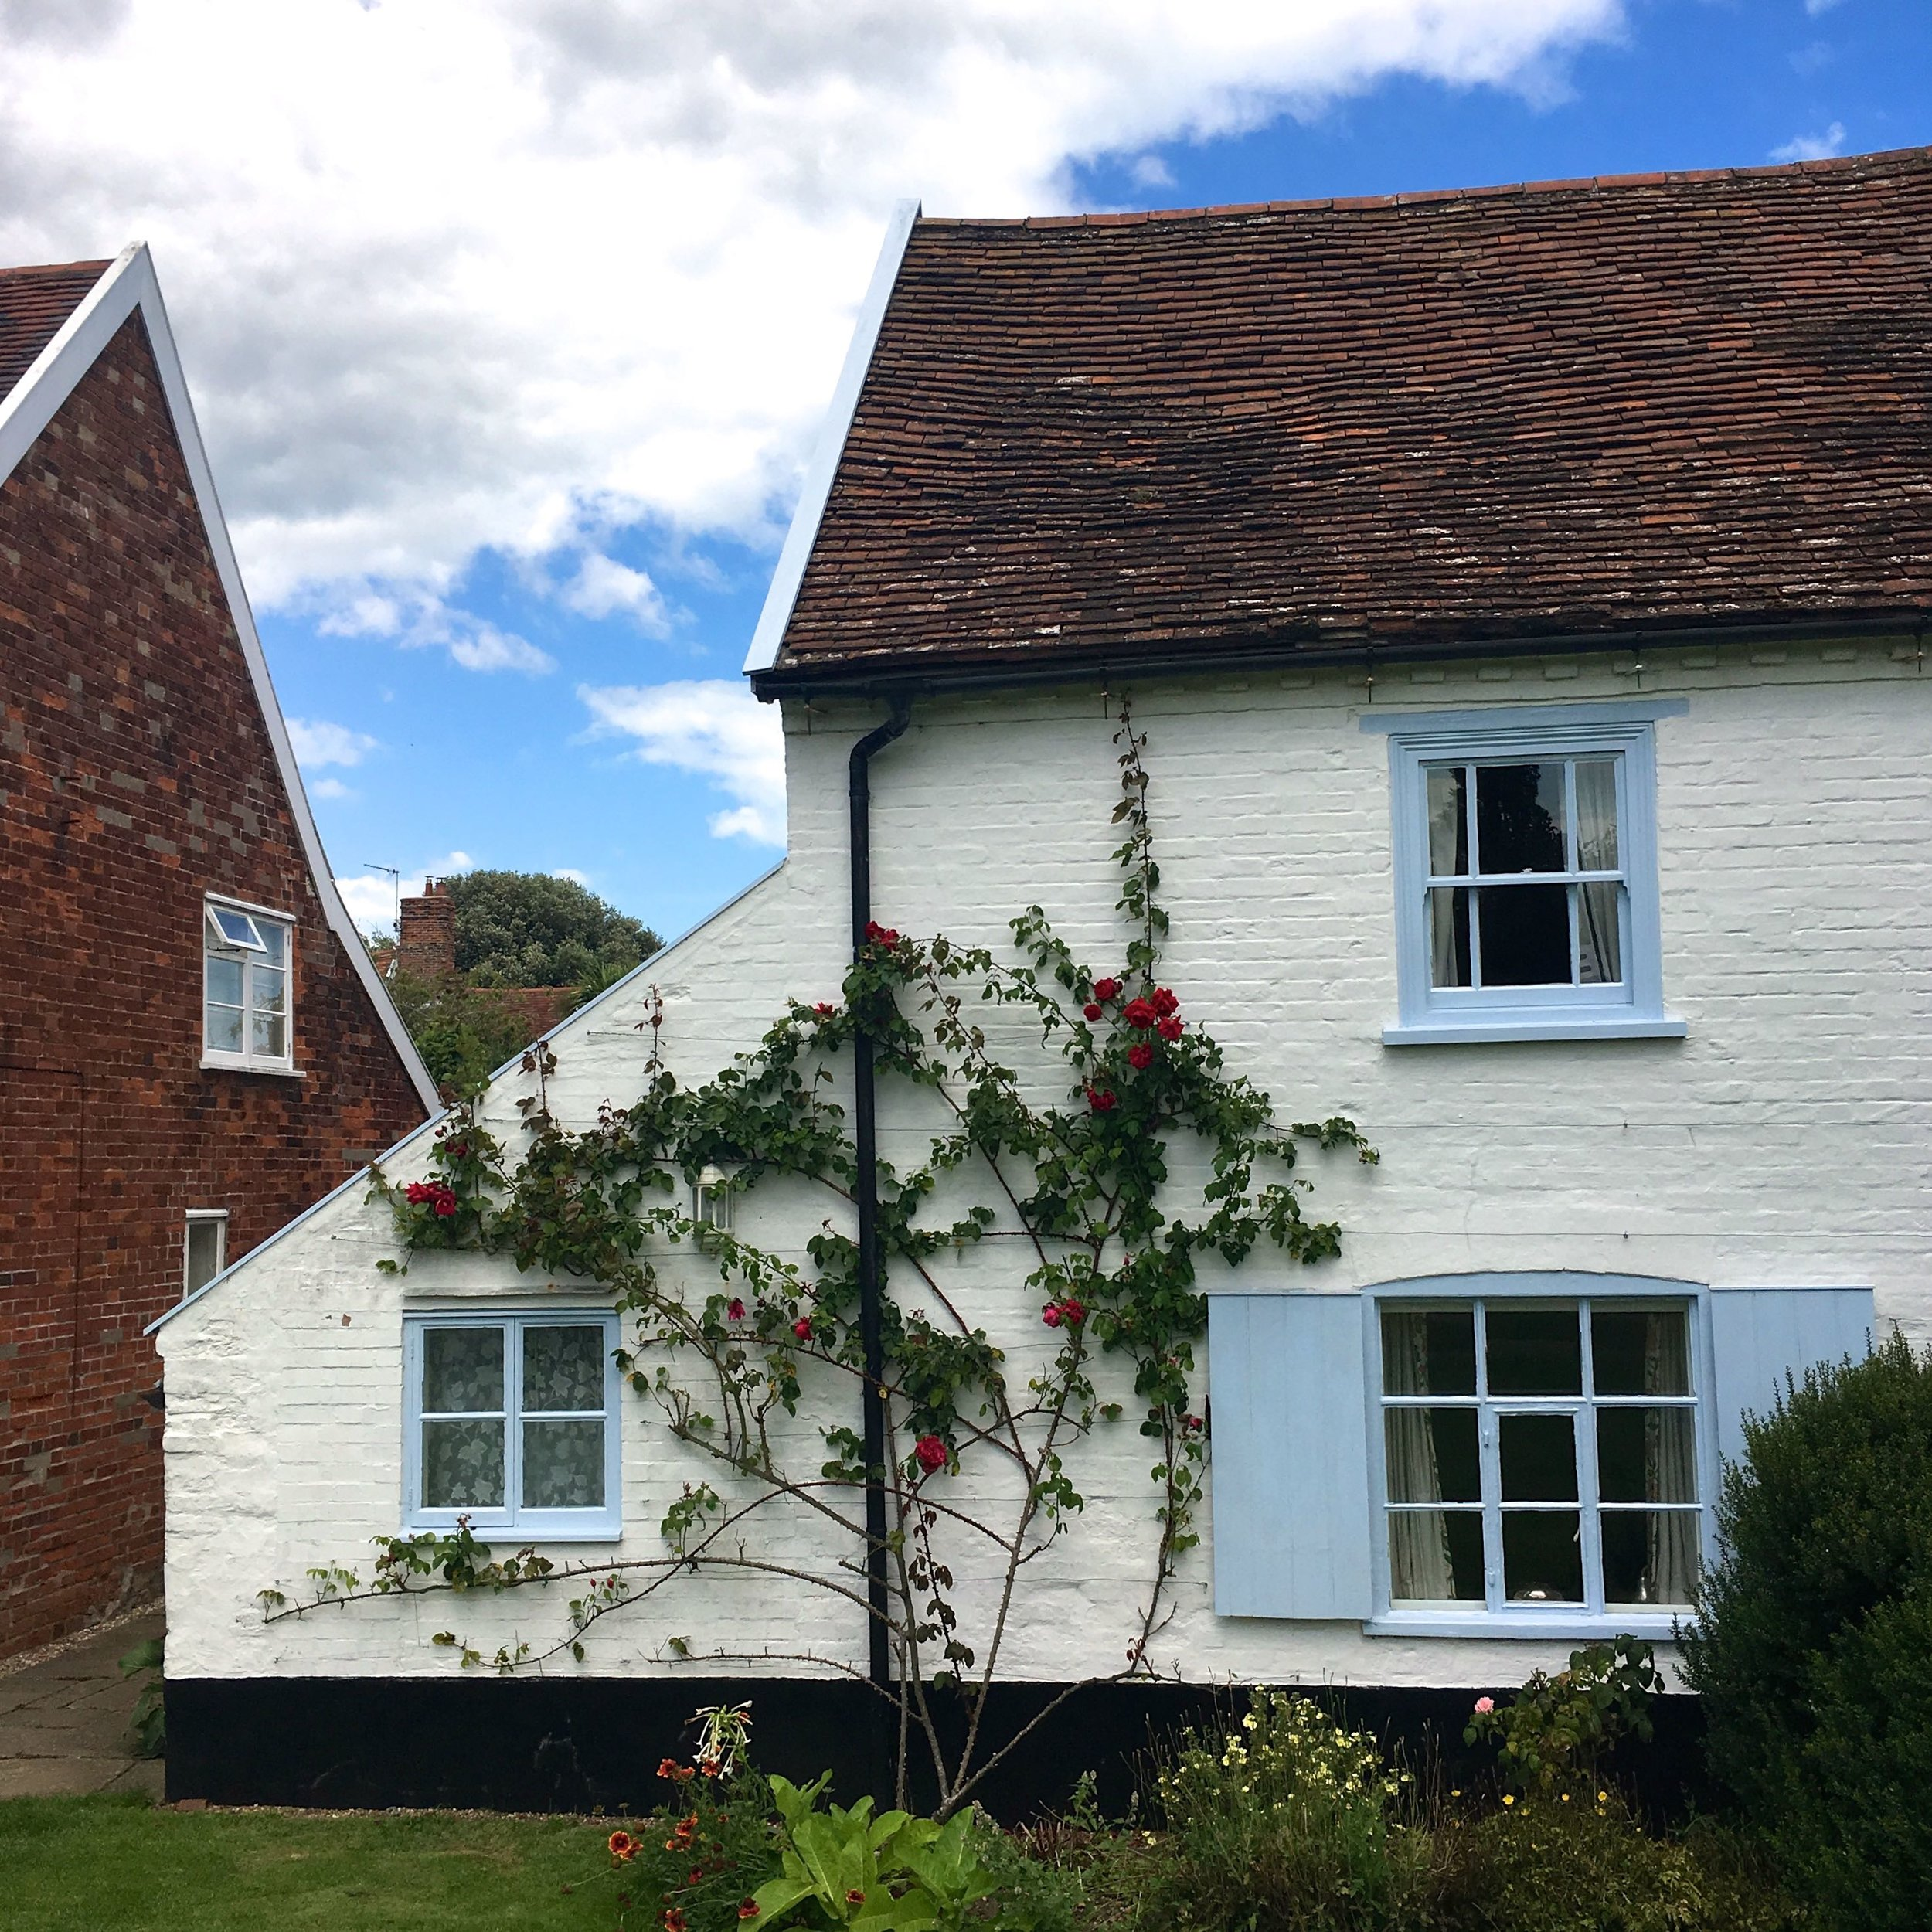 whitewashed cottages with roses growing up it in Orford Suffolk